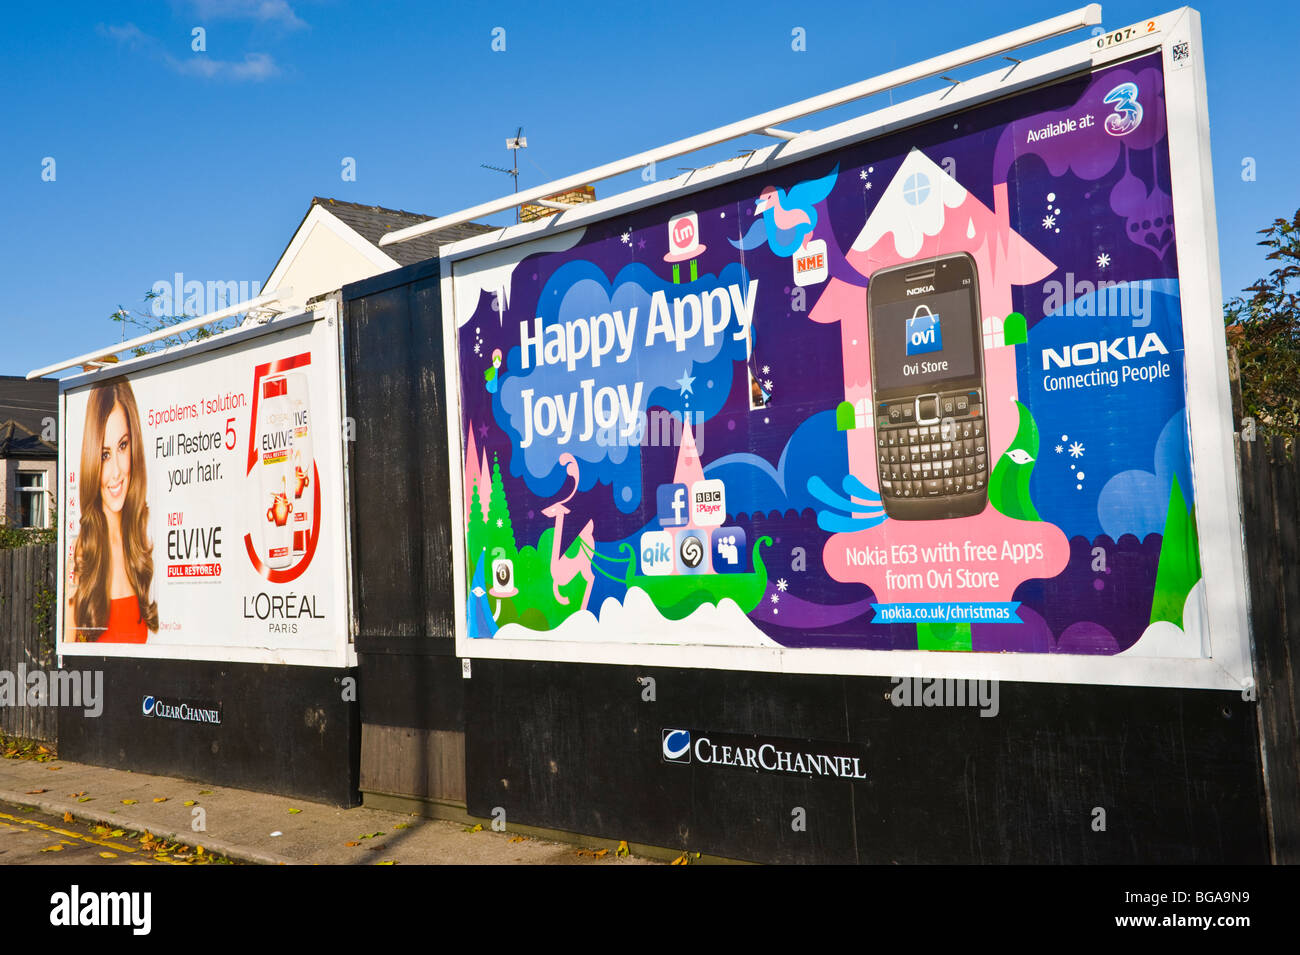 Nokia mobile phones stock photos nokia mobile phones stock clearchannel billboard site featuring poster for nokia mobile phones next to cheryl cole loreal biocorpaavc Choice Image